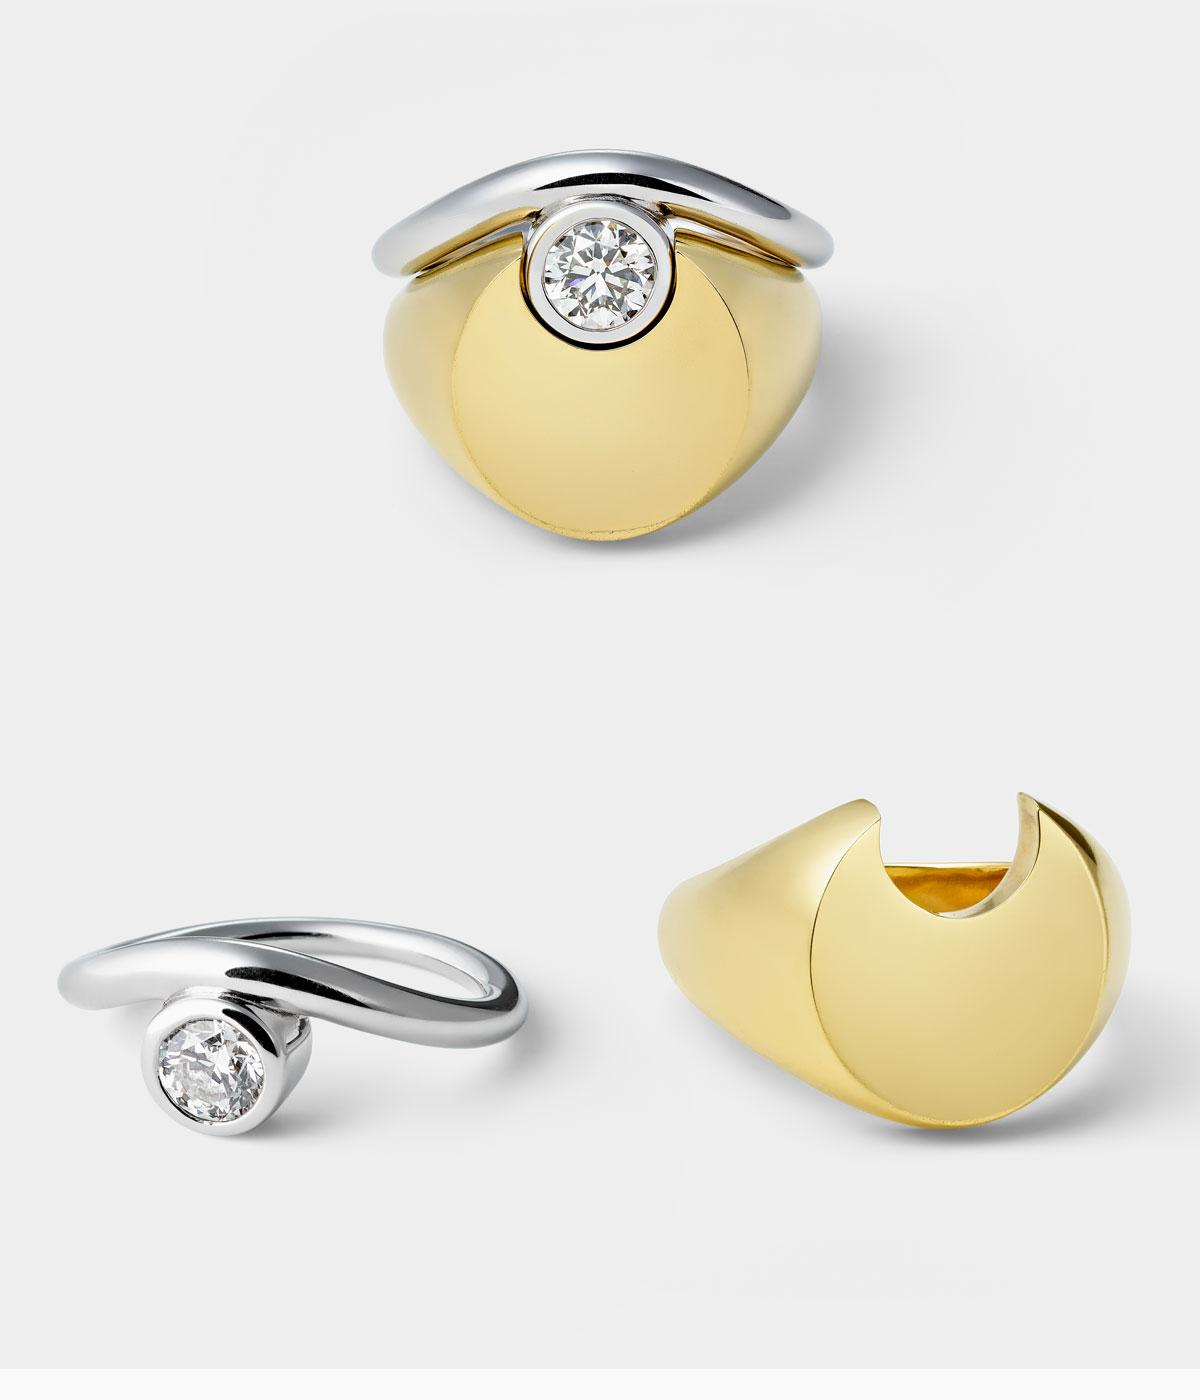 Sam Ham engagement signet ring in gold and silver